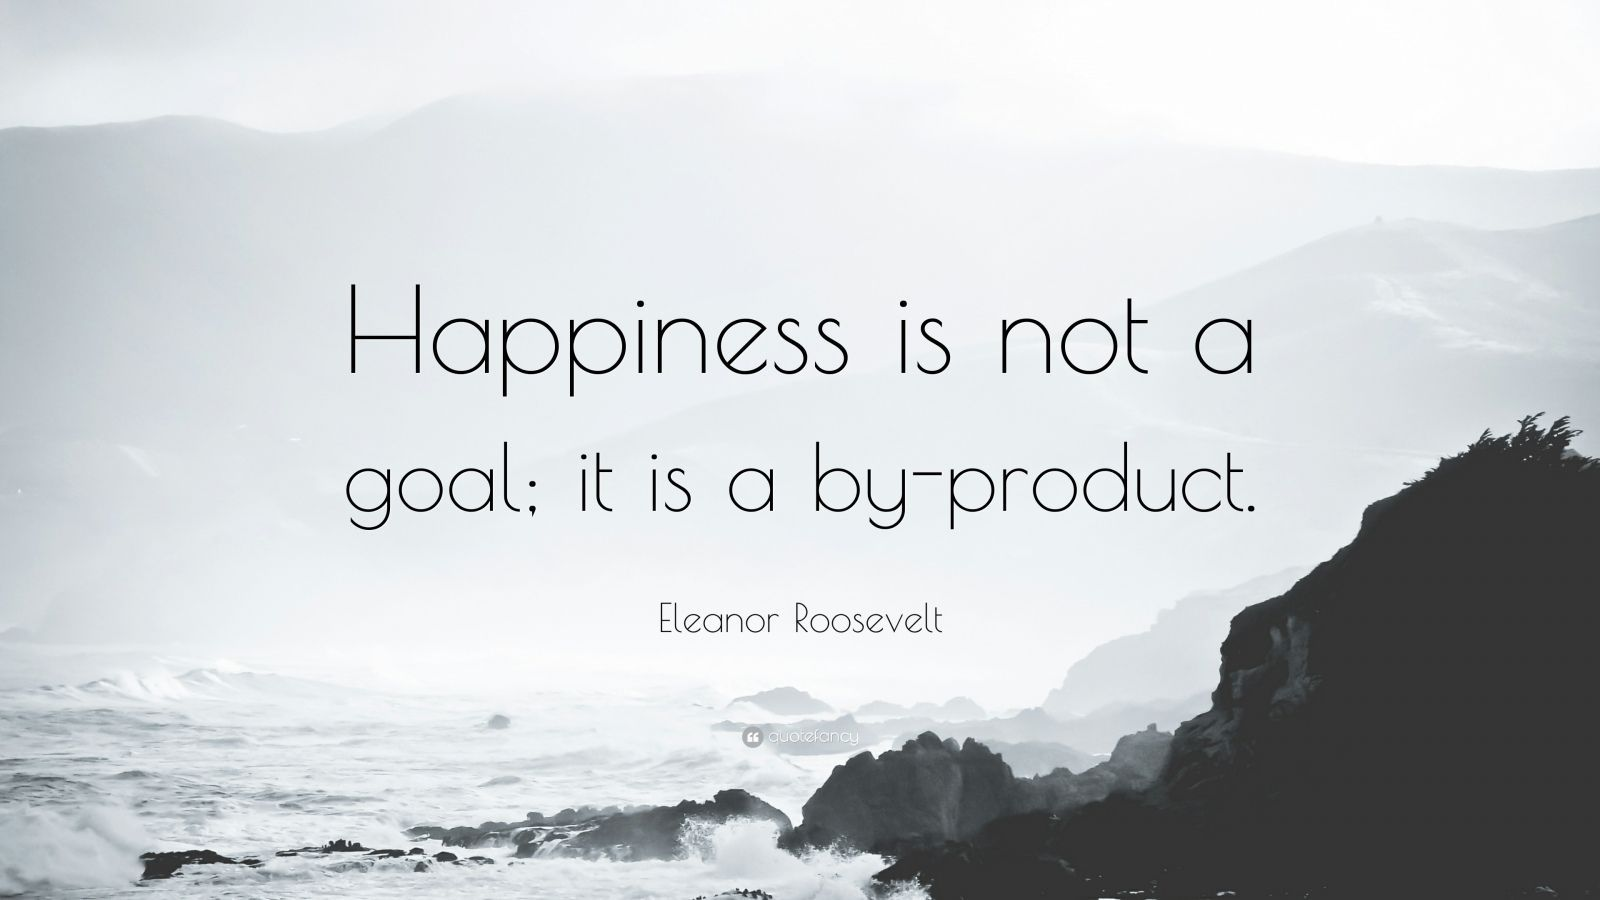 Quotes Happiness Top 25 Most Inspiring Quotes Guaranteed To Motivate You .